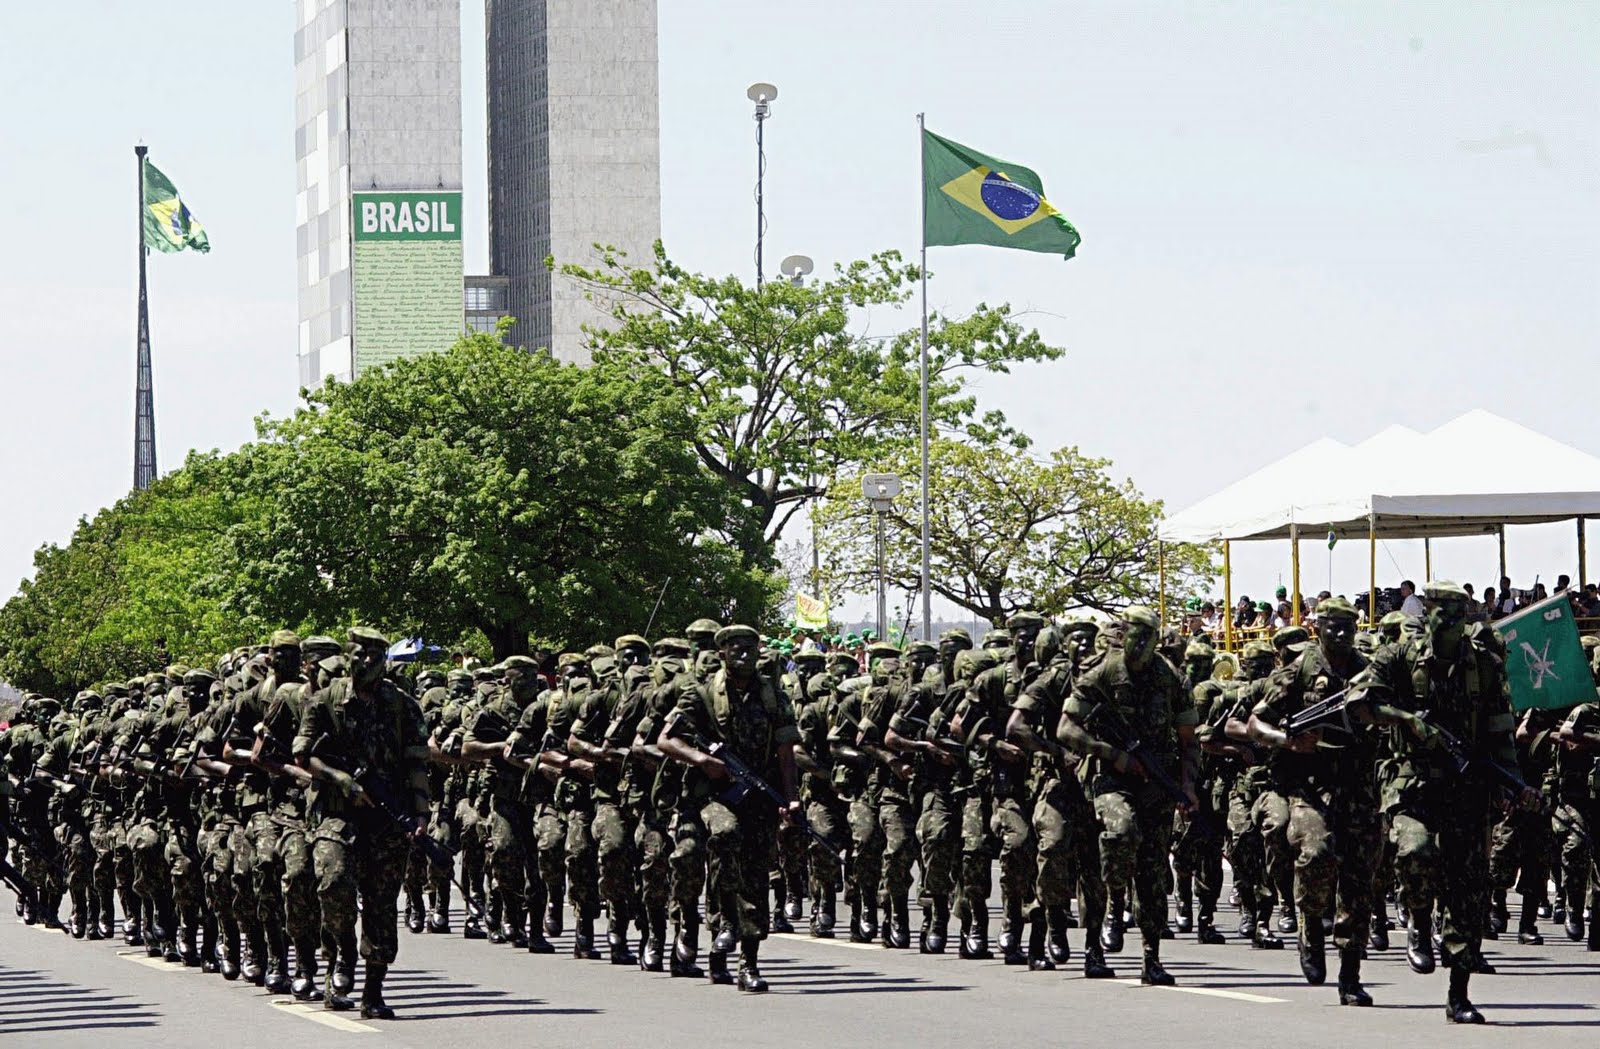 Brazil military army forces